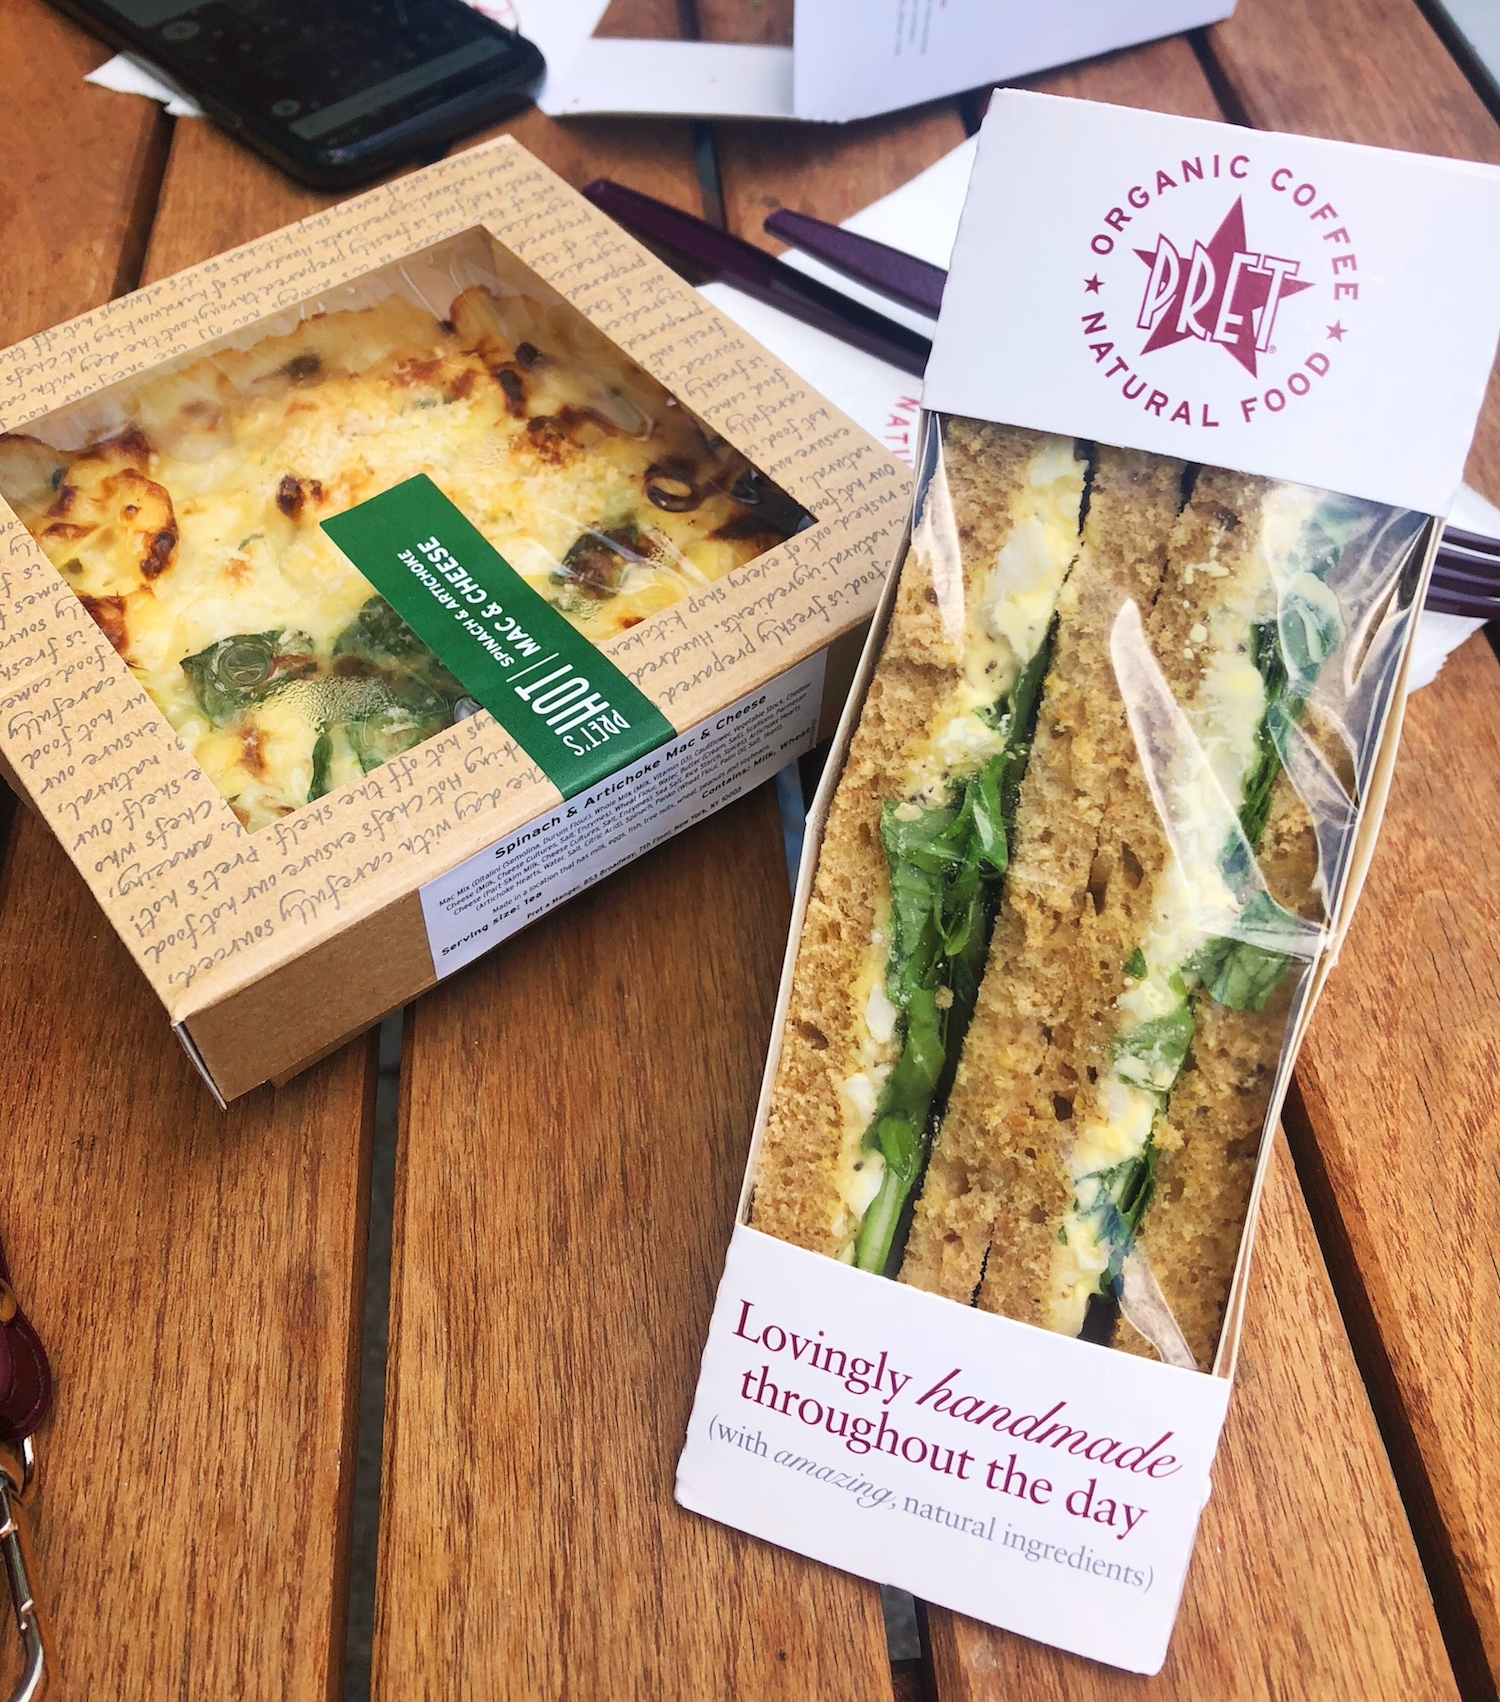 Tasty goodies from Pret